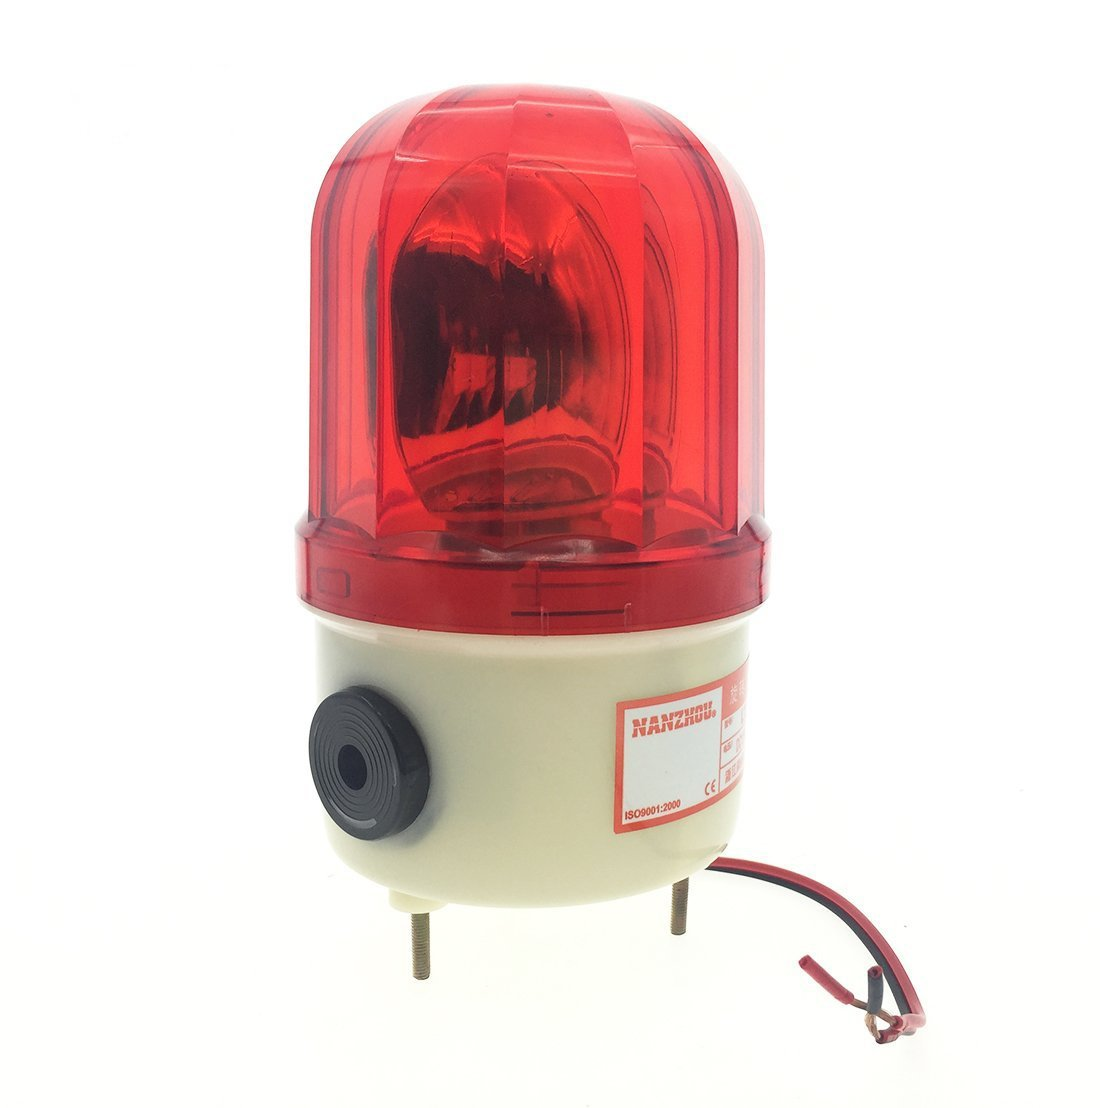 YXQ Red Warning Light DC12V 10W Halogen Bulb Industrial Rotary Signal Lamp LTE-1101J (Dome Case)